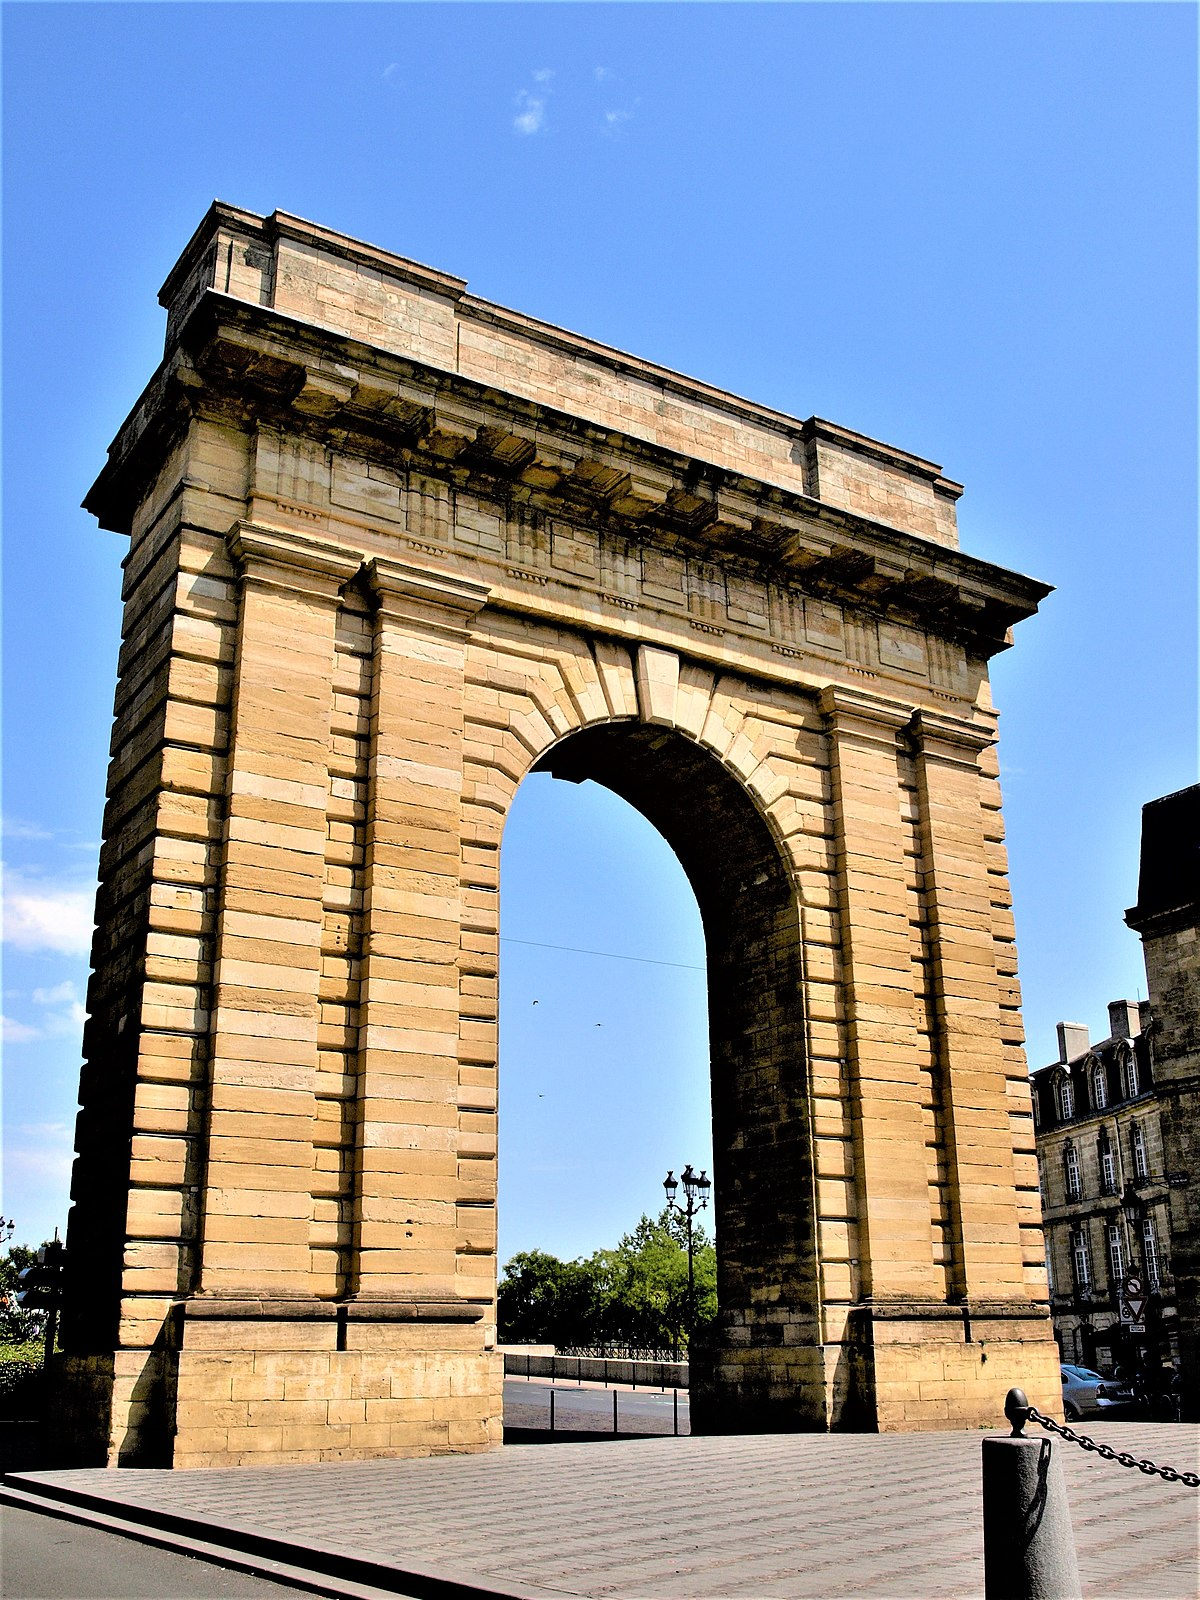 Porte de bourgogne wikip dia for Porte wikipedia